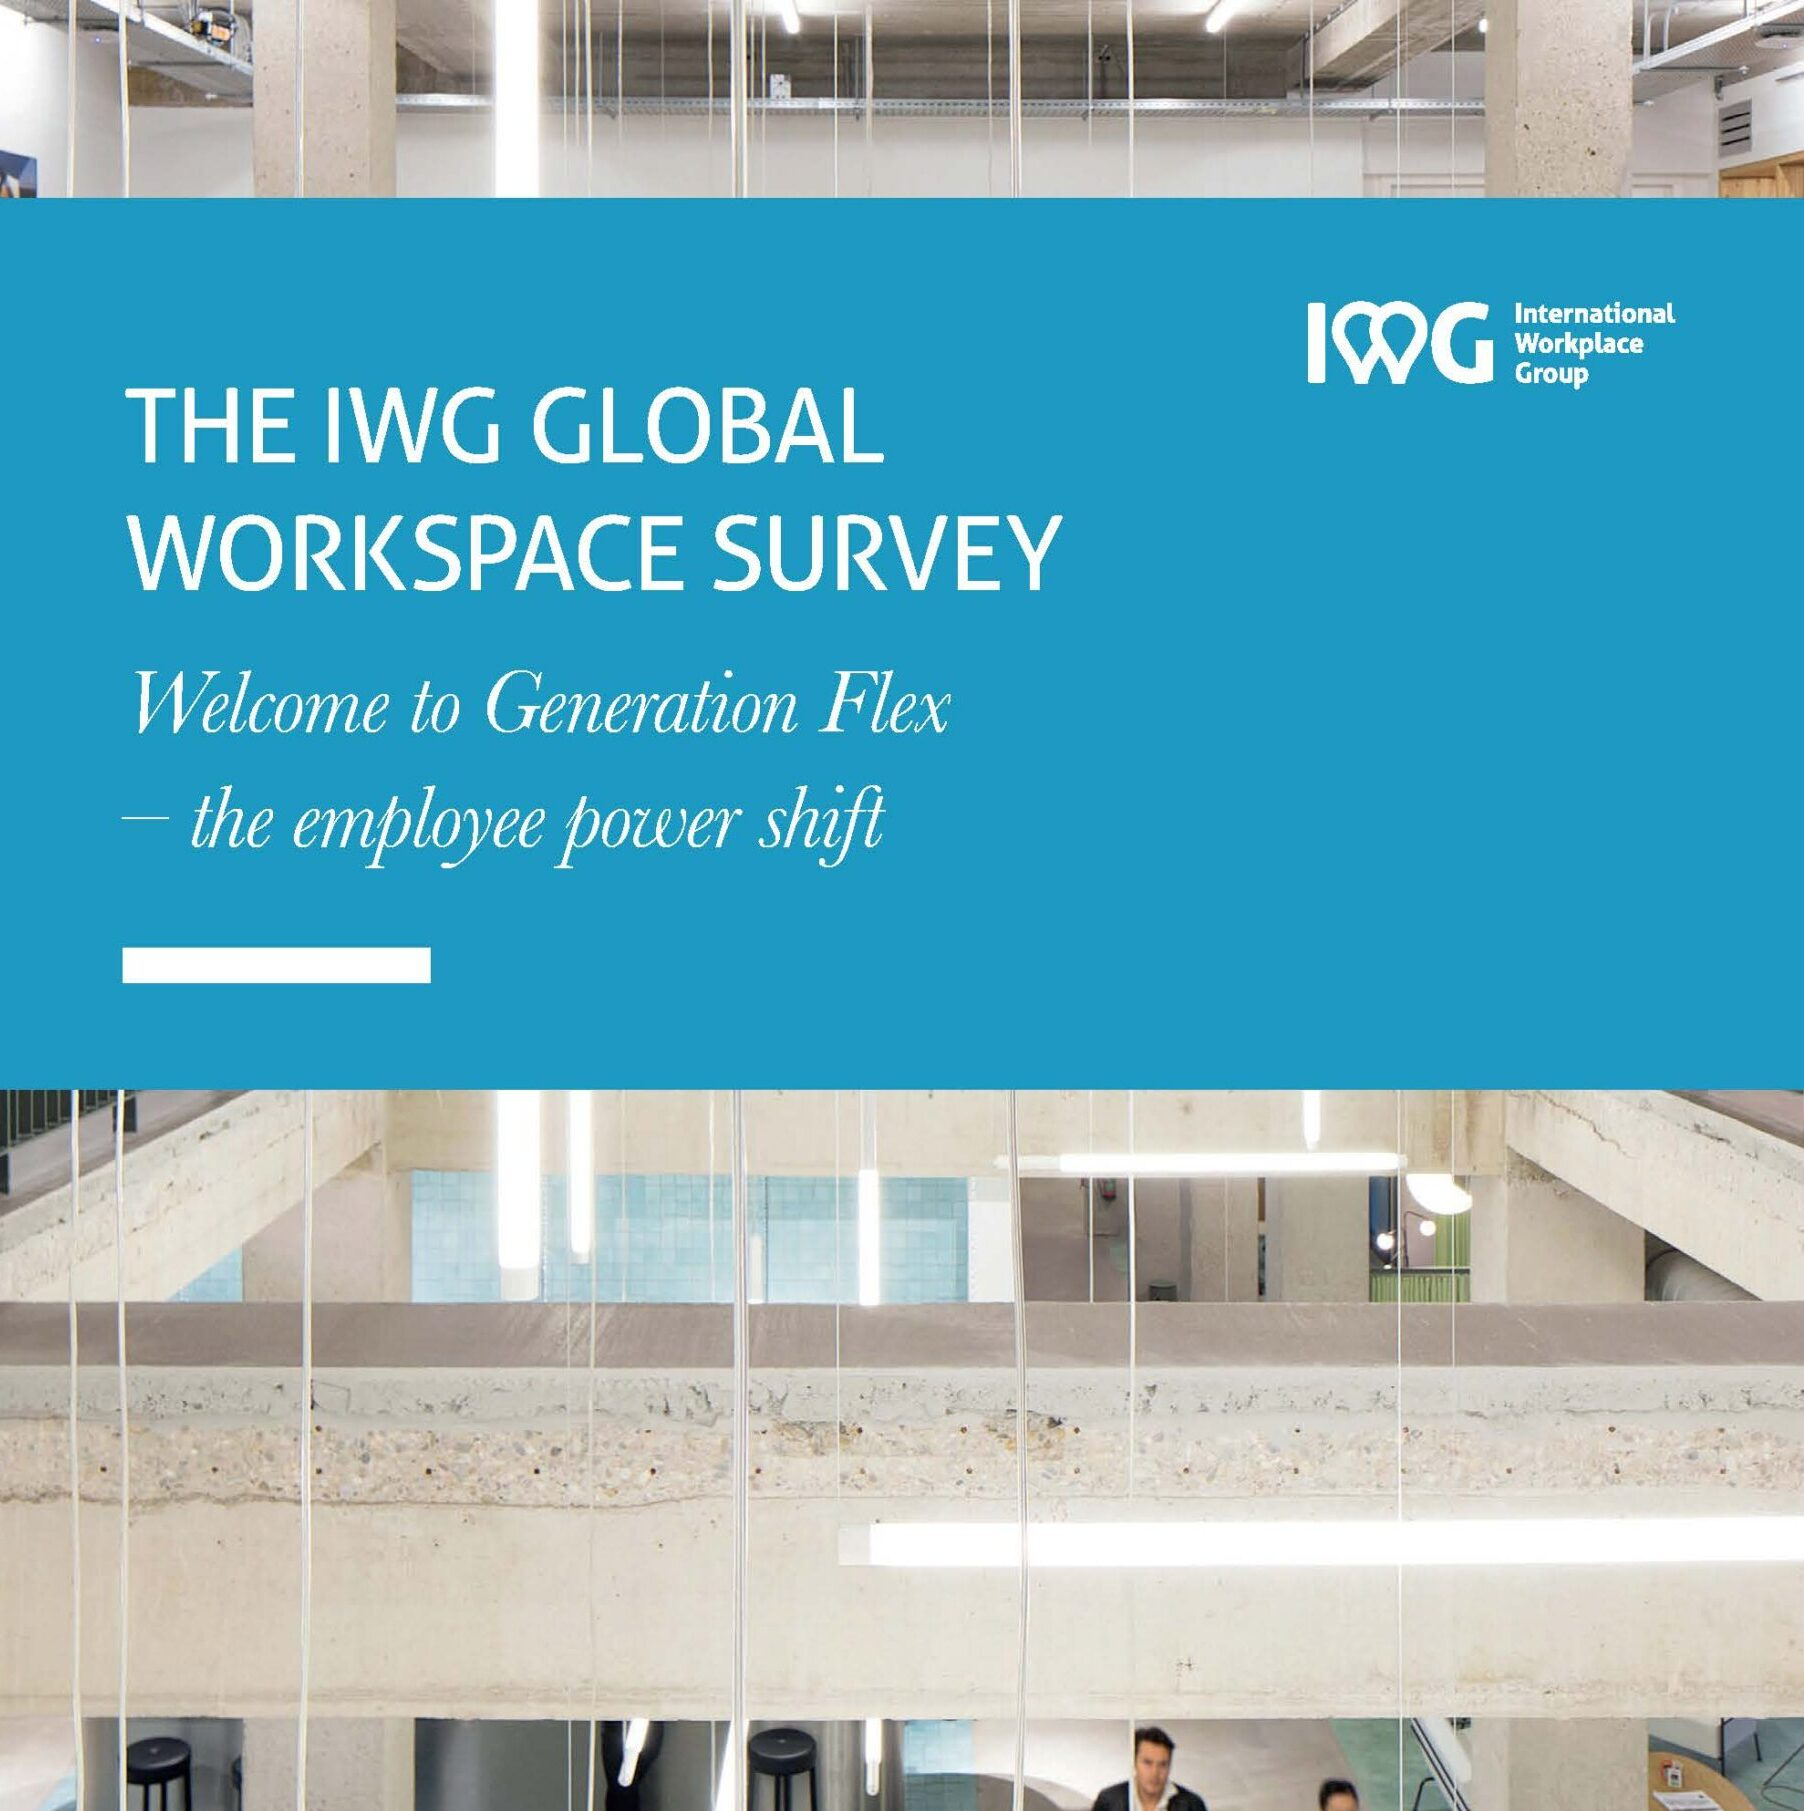 The IWG Global Workspace Survey